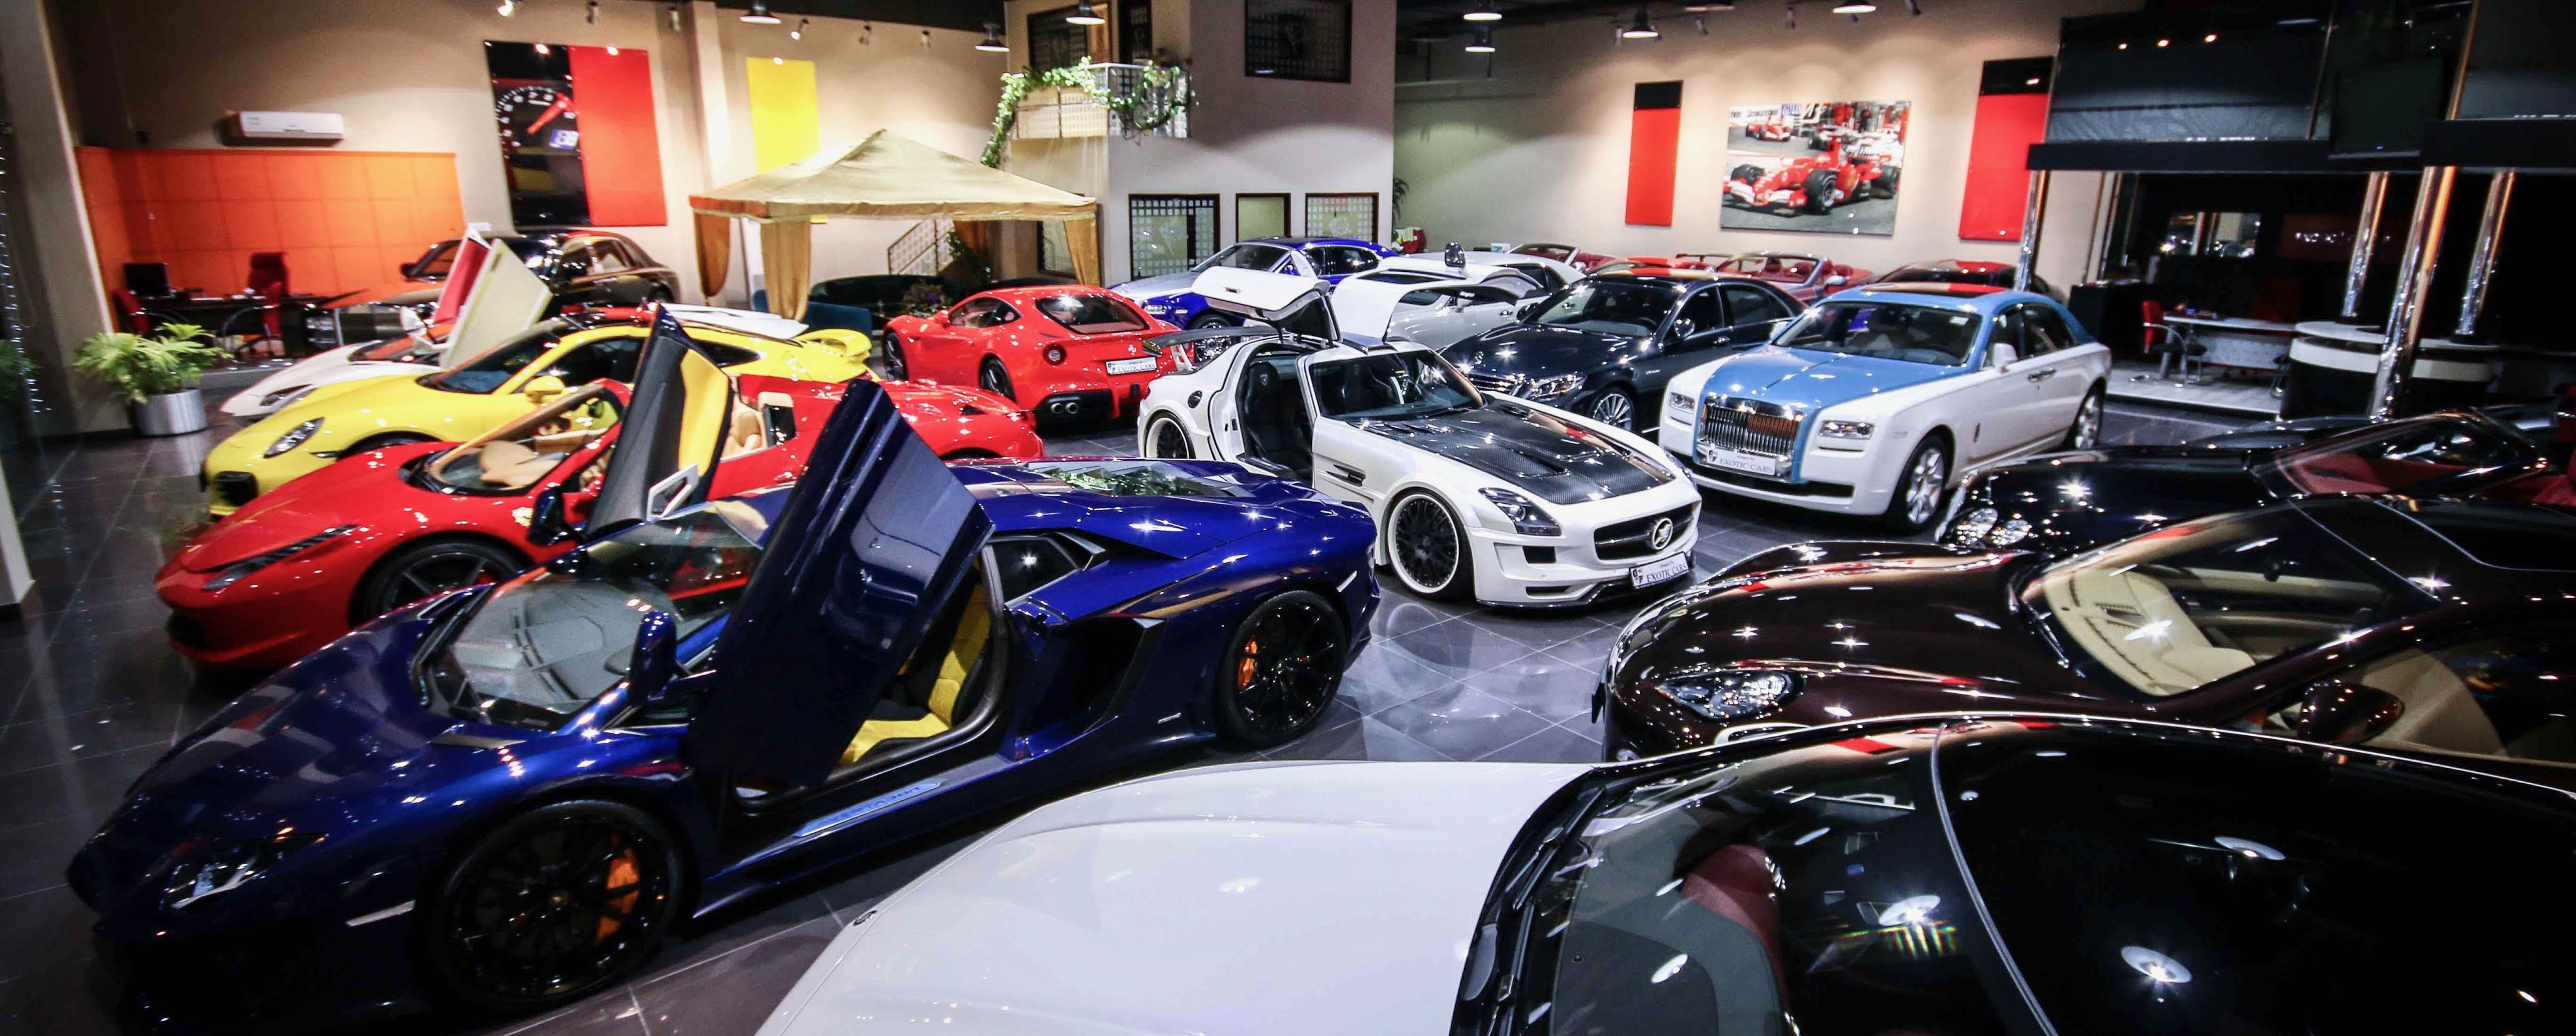 Supercar Garage Can Anyone Get Me Keys Please